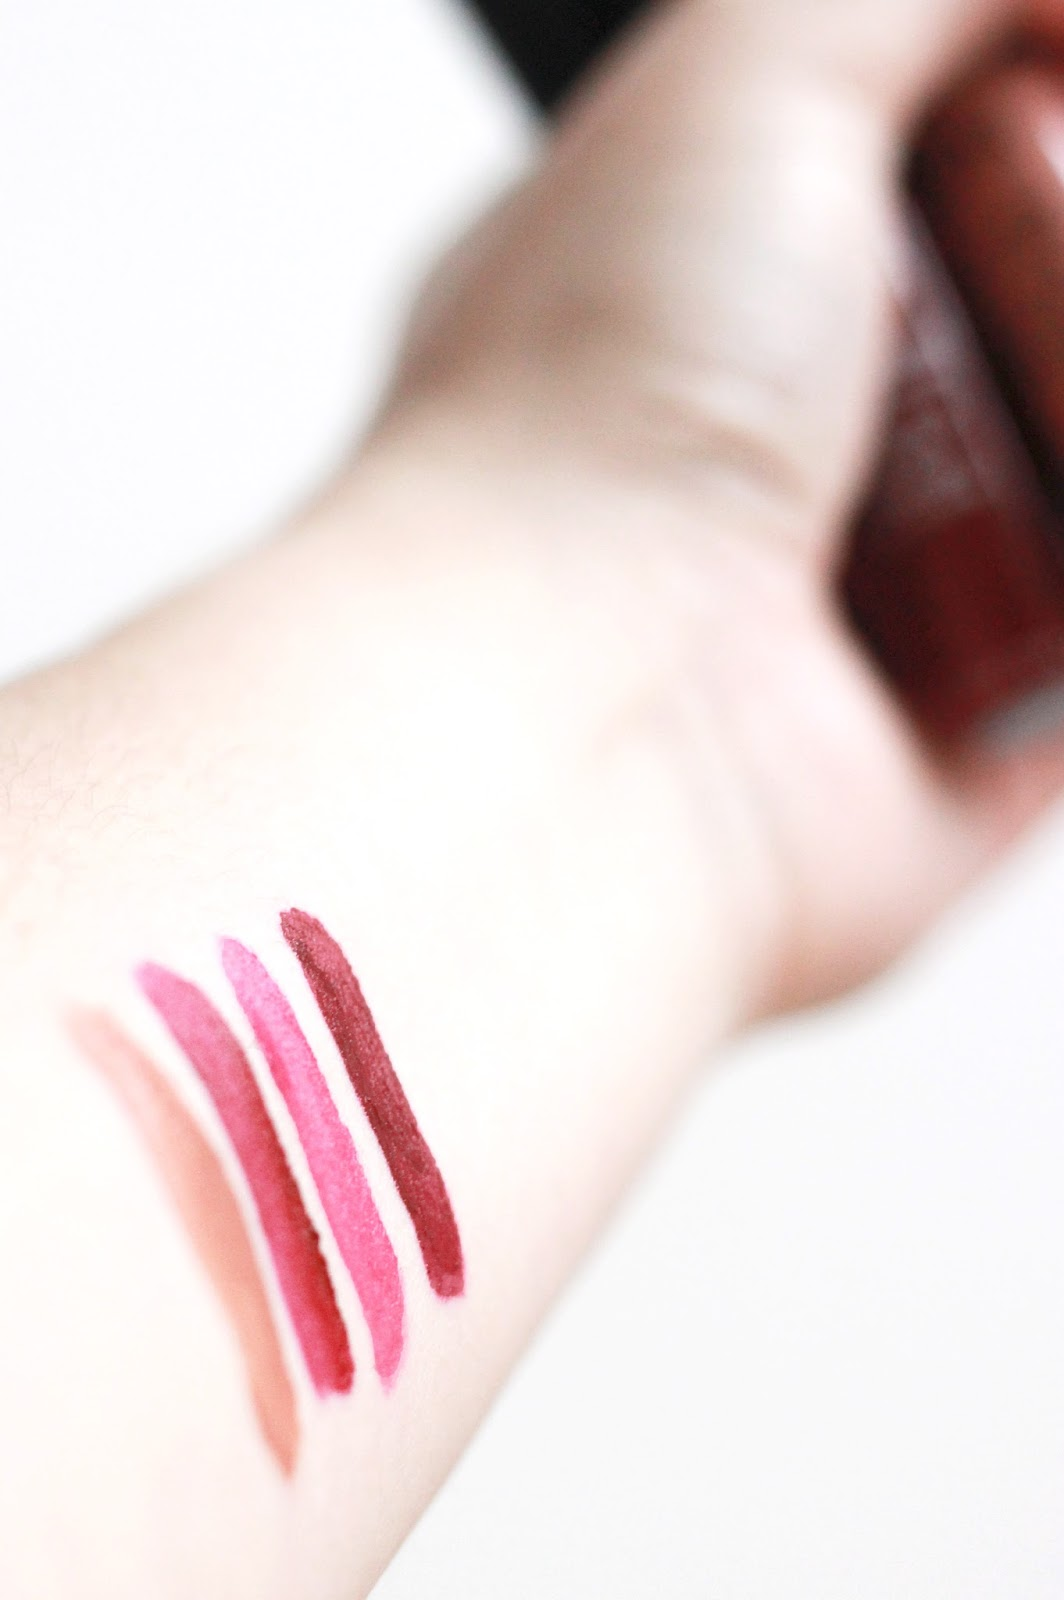 NYX Soft Matte Lip Creams Copenhagen, Milan, Madrid, London Swatches